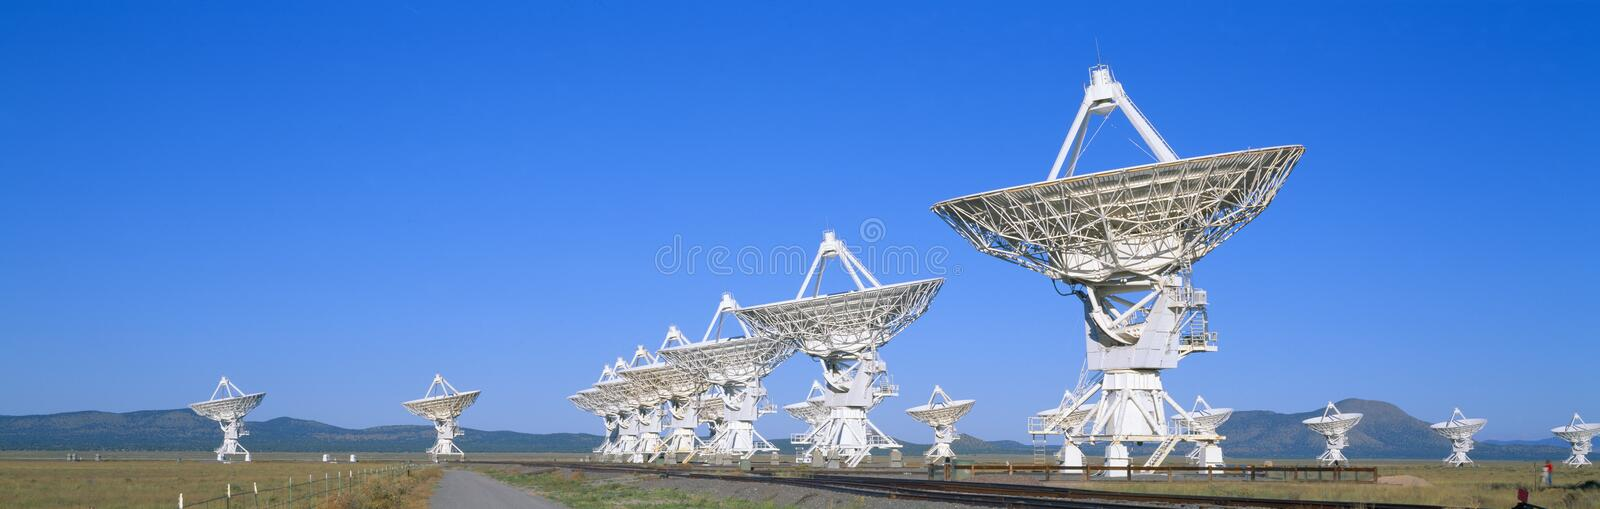 National Astronomy Observatory stock images